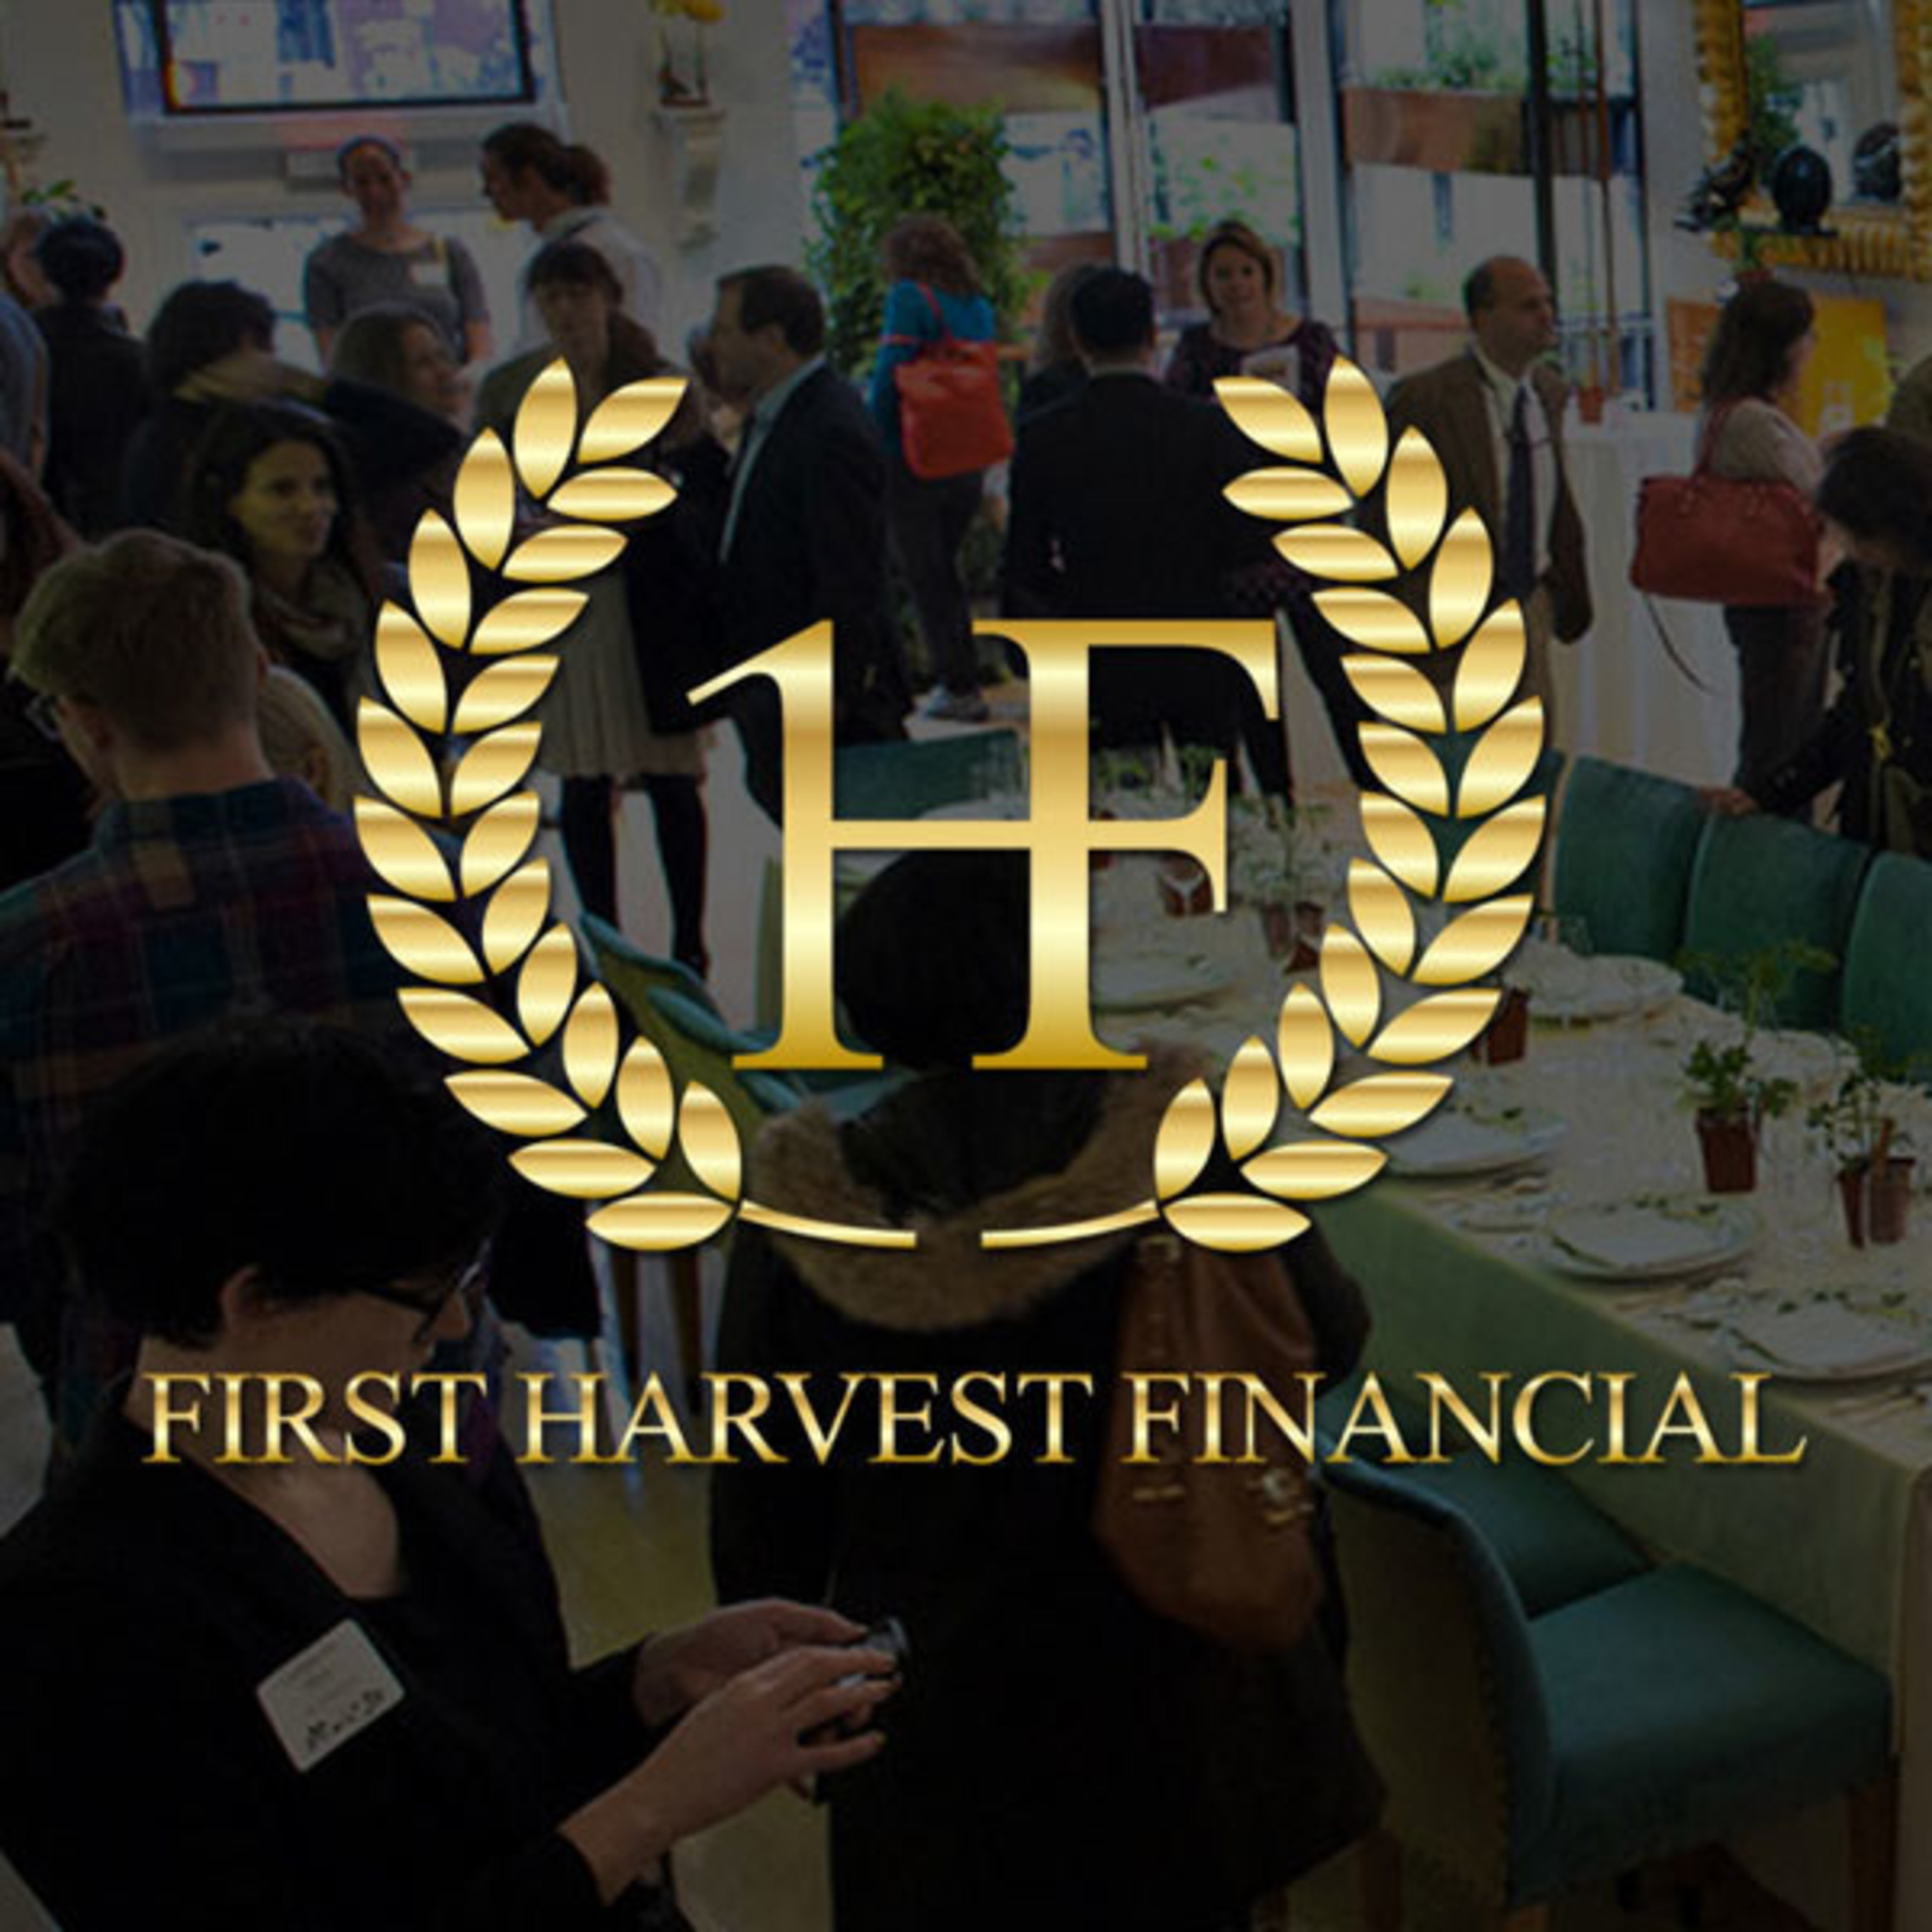 First Harvest Financial Expands Its Office Locations to Chicago and Boca Raton